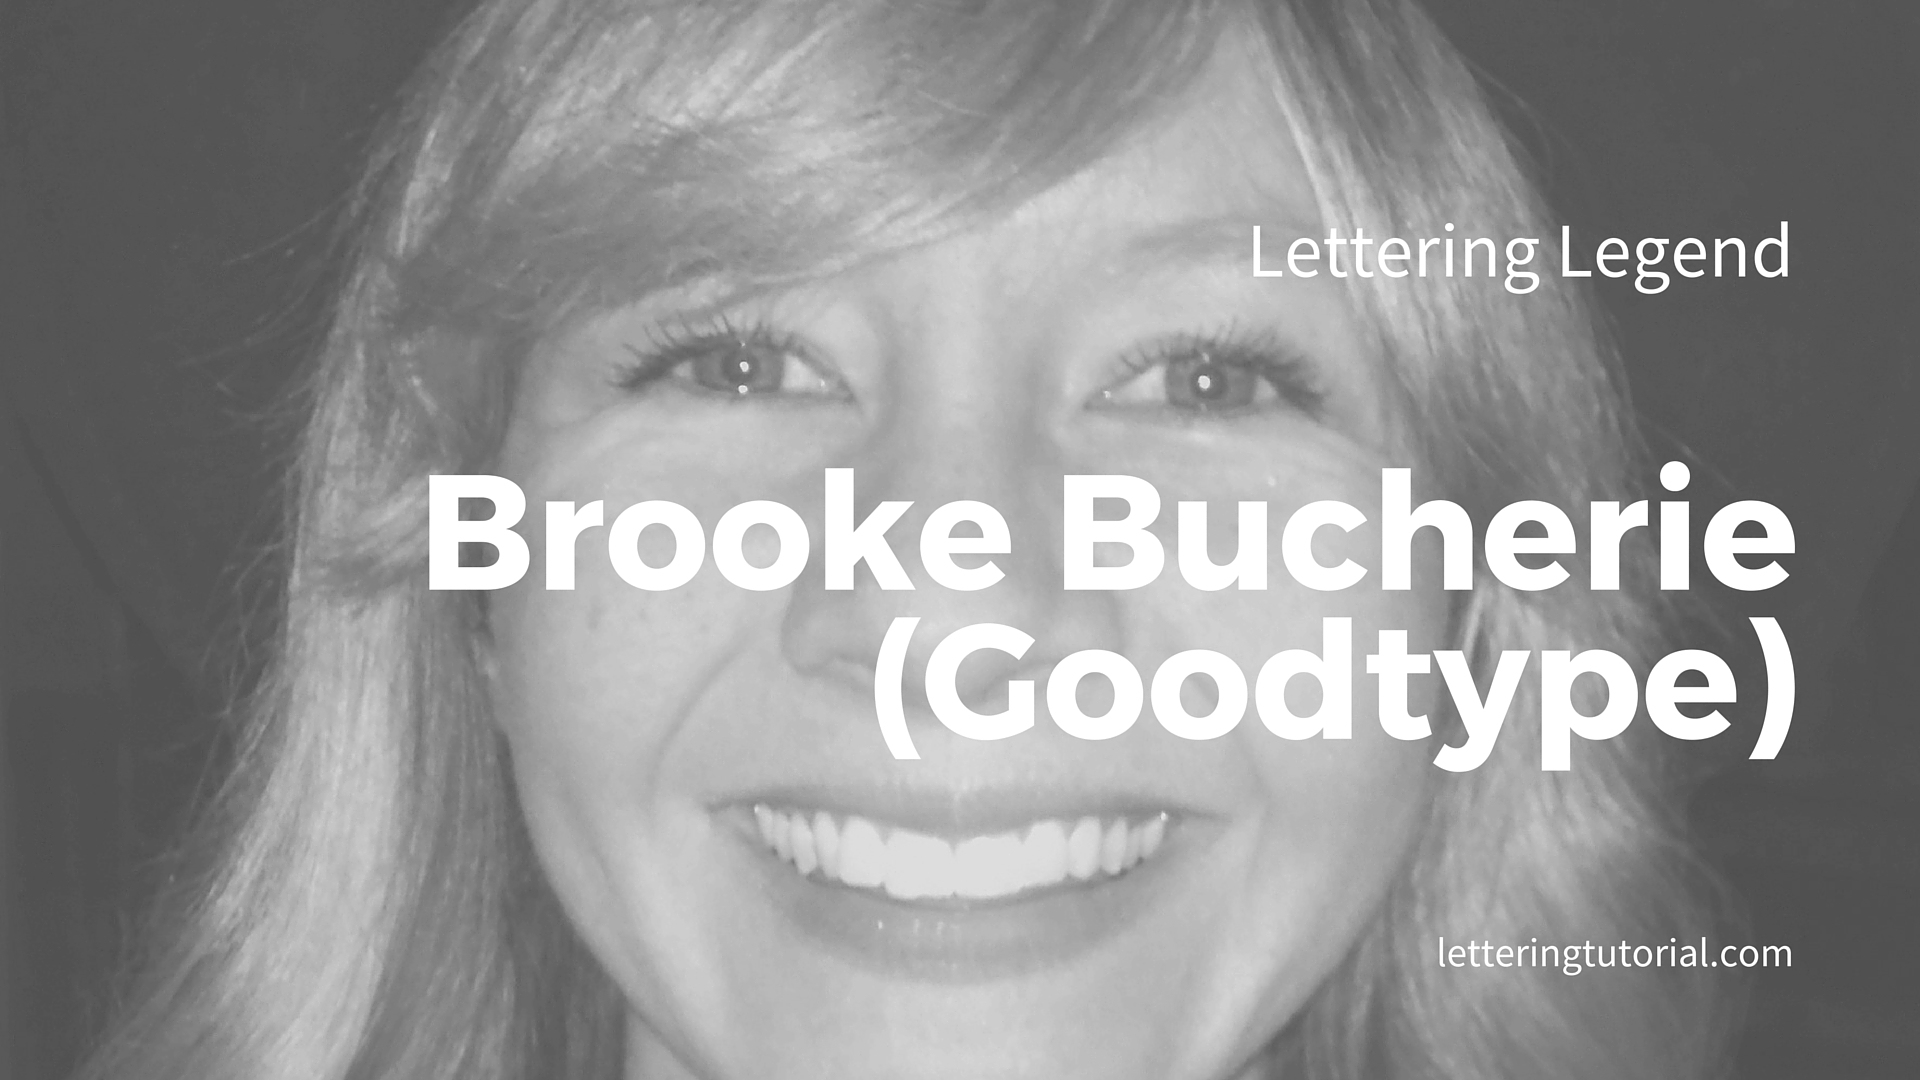 Lettering Legend - Brooke Bucherie (Goodtype) Interview - Lettering Tutorial